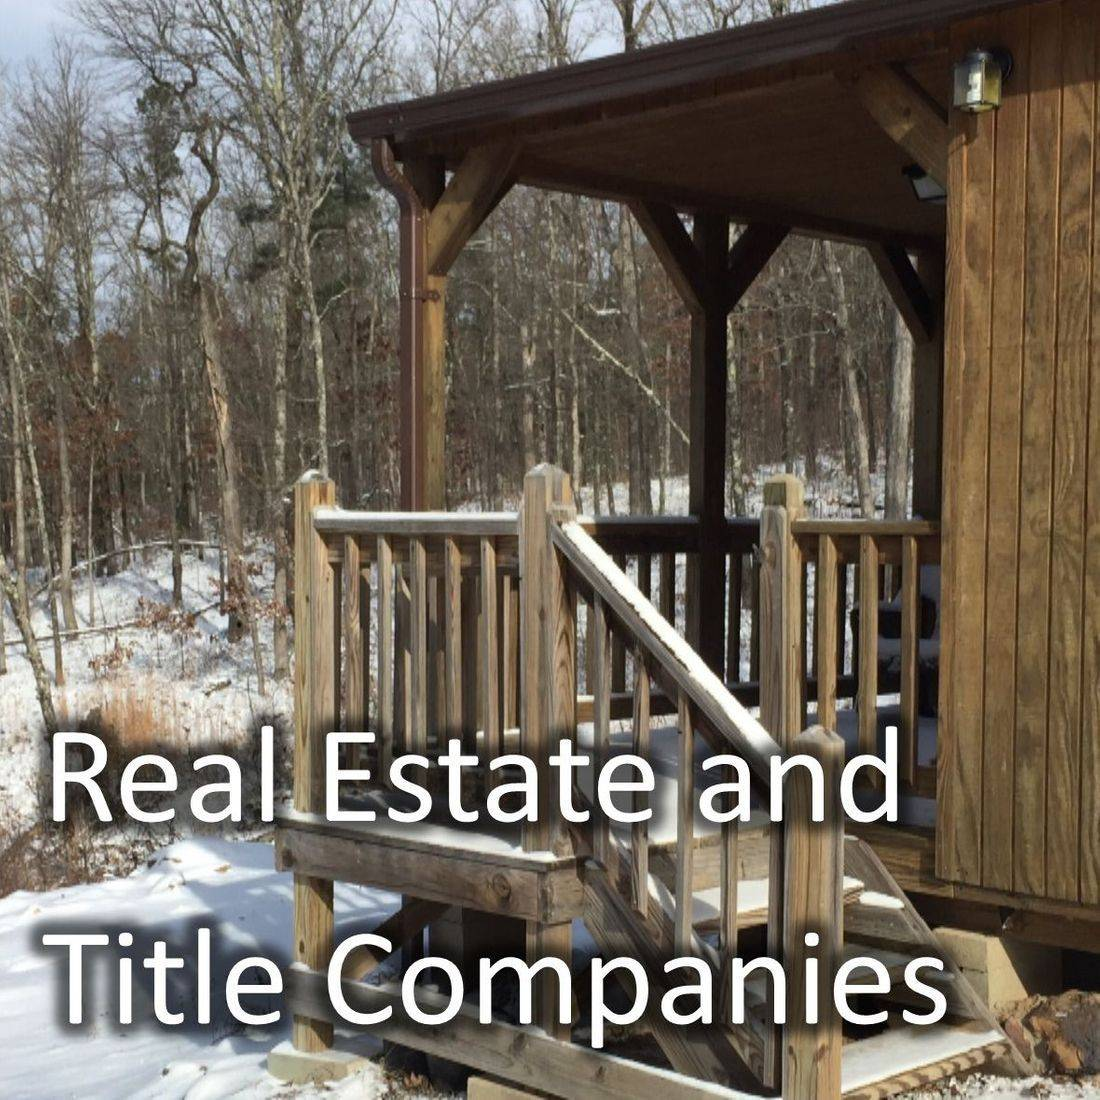 Real Estate and Title Companies